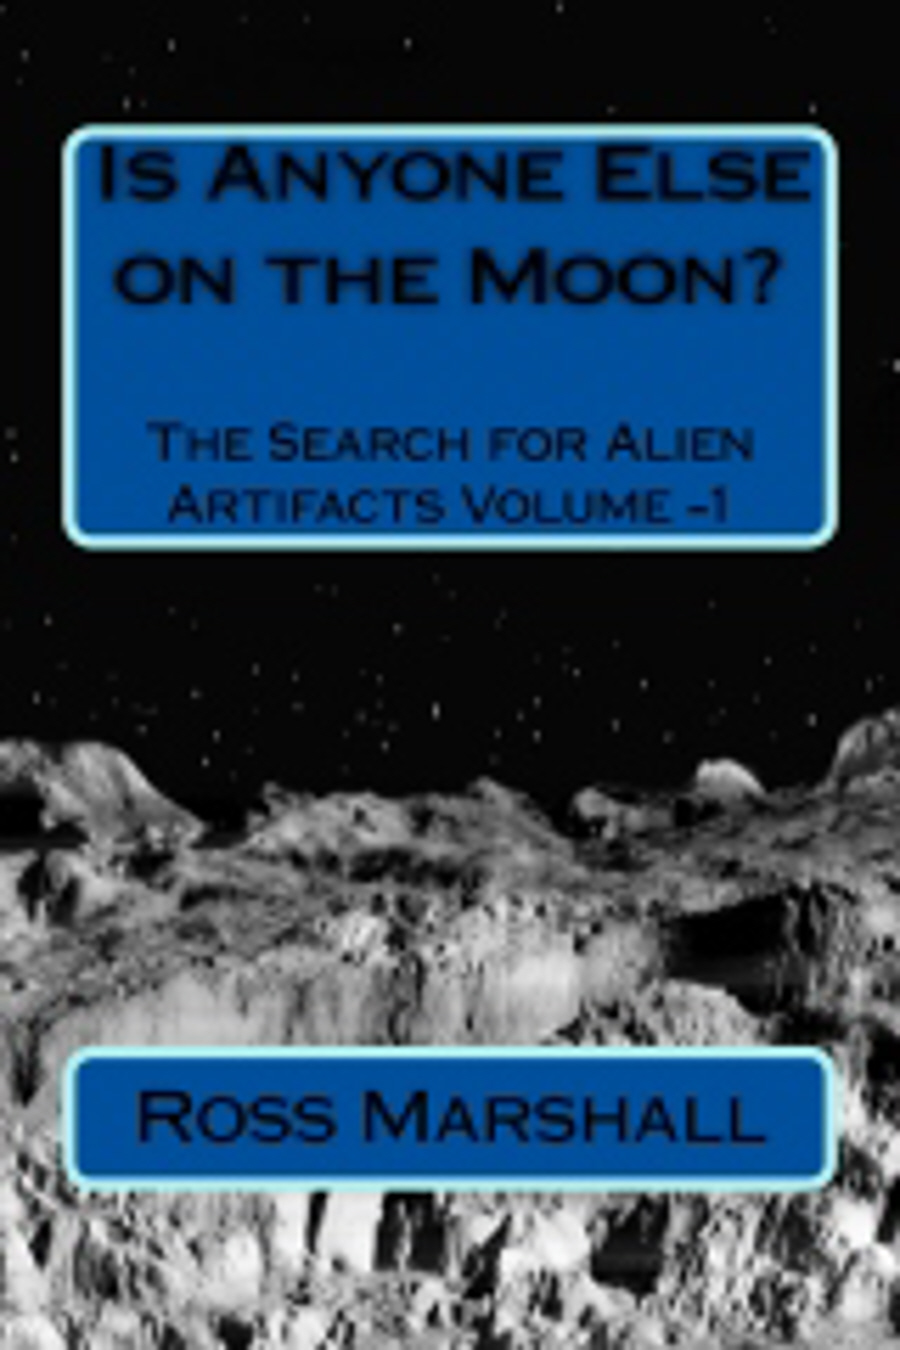 New Alien Artifacts Book!